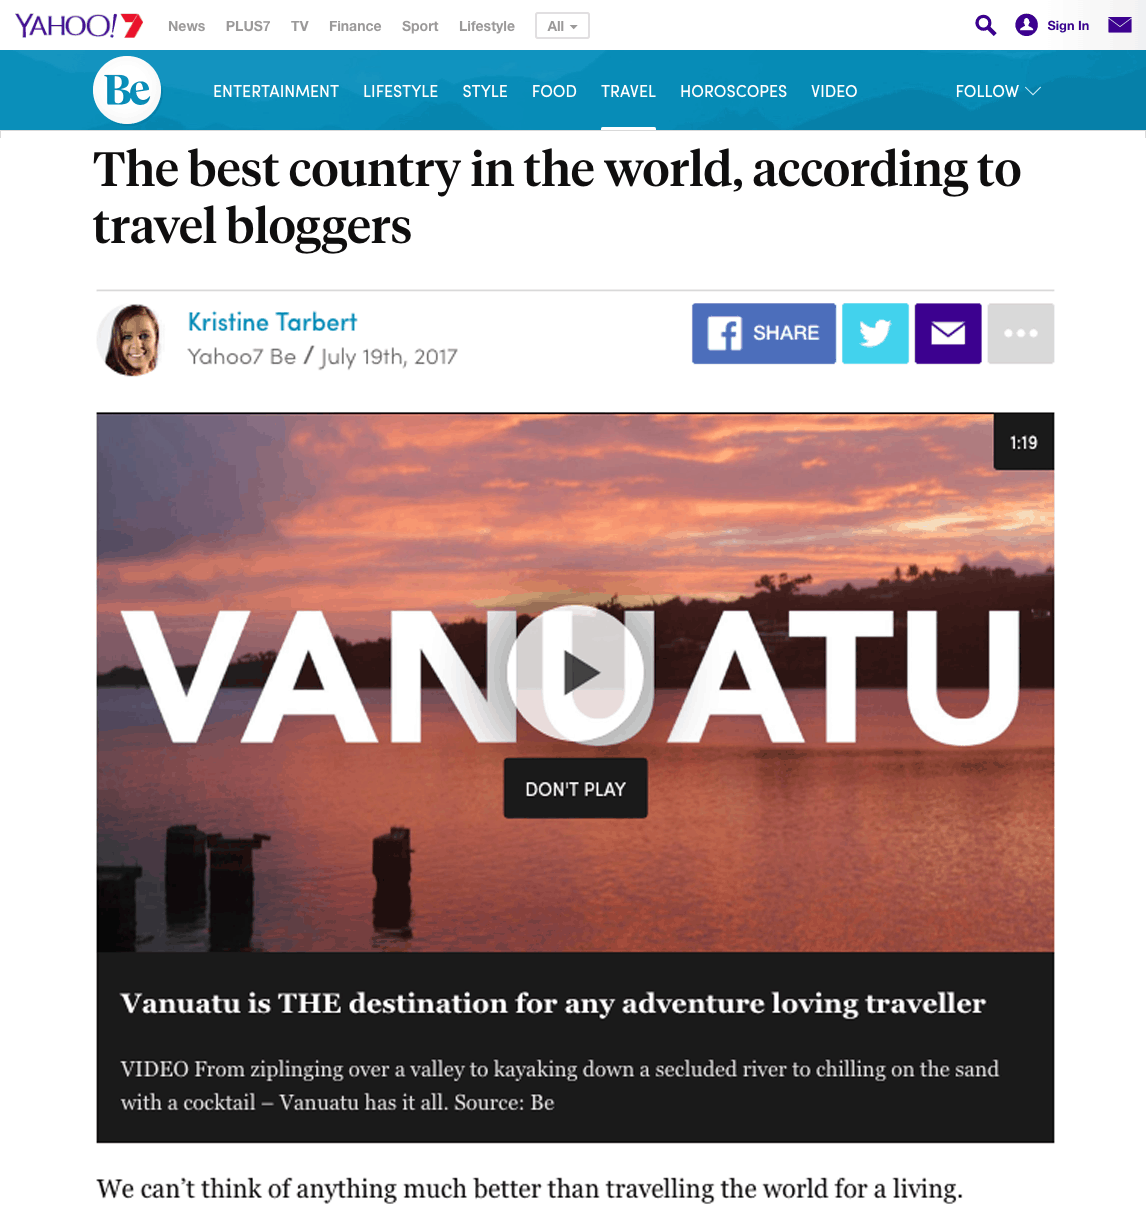 The best country in the world, according to travel bloggers